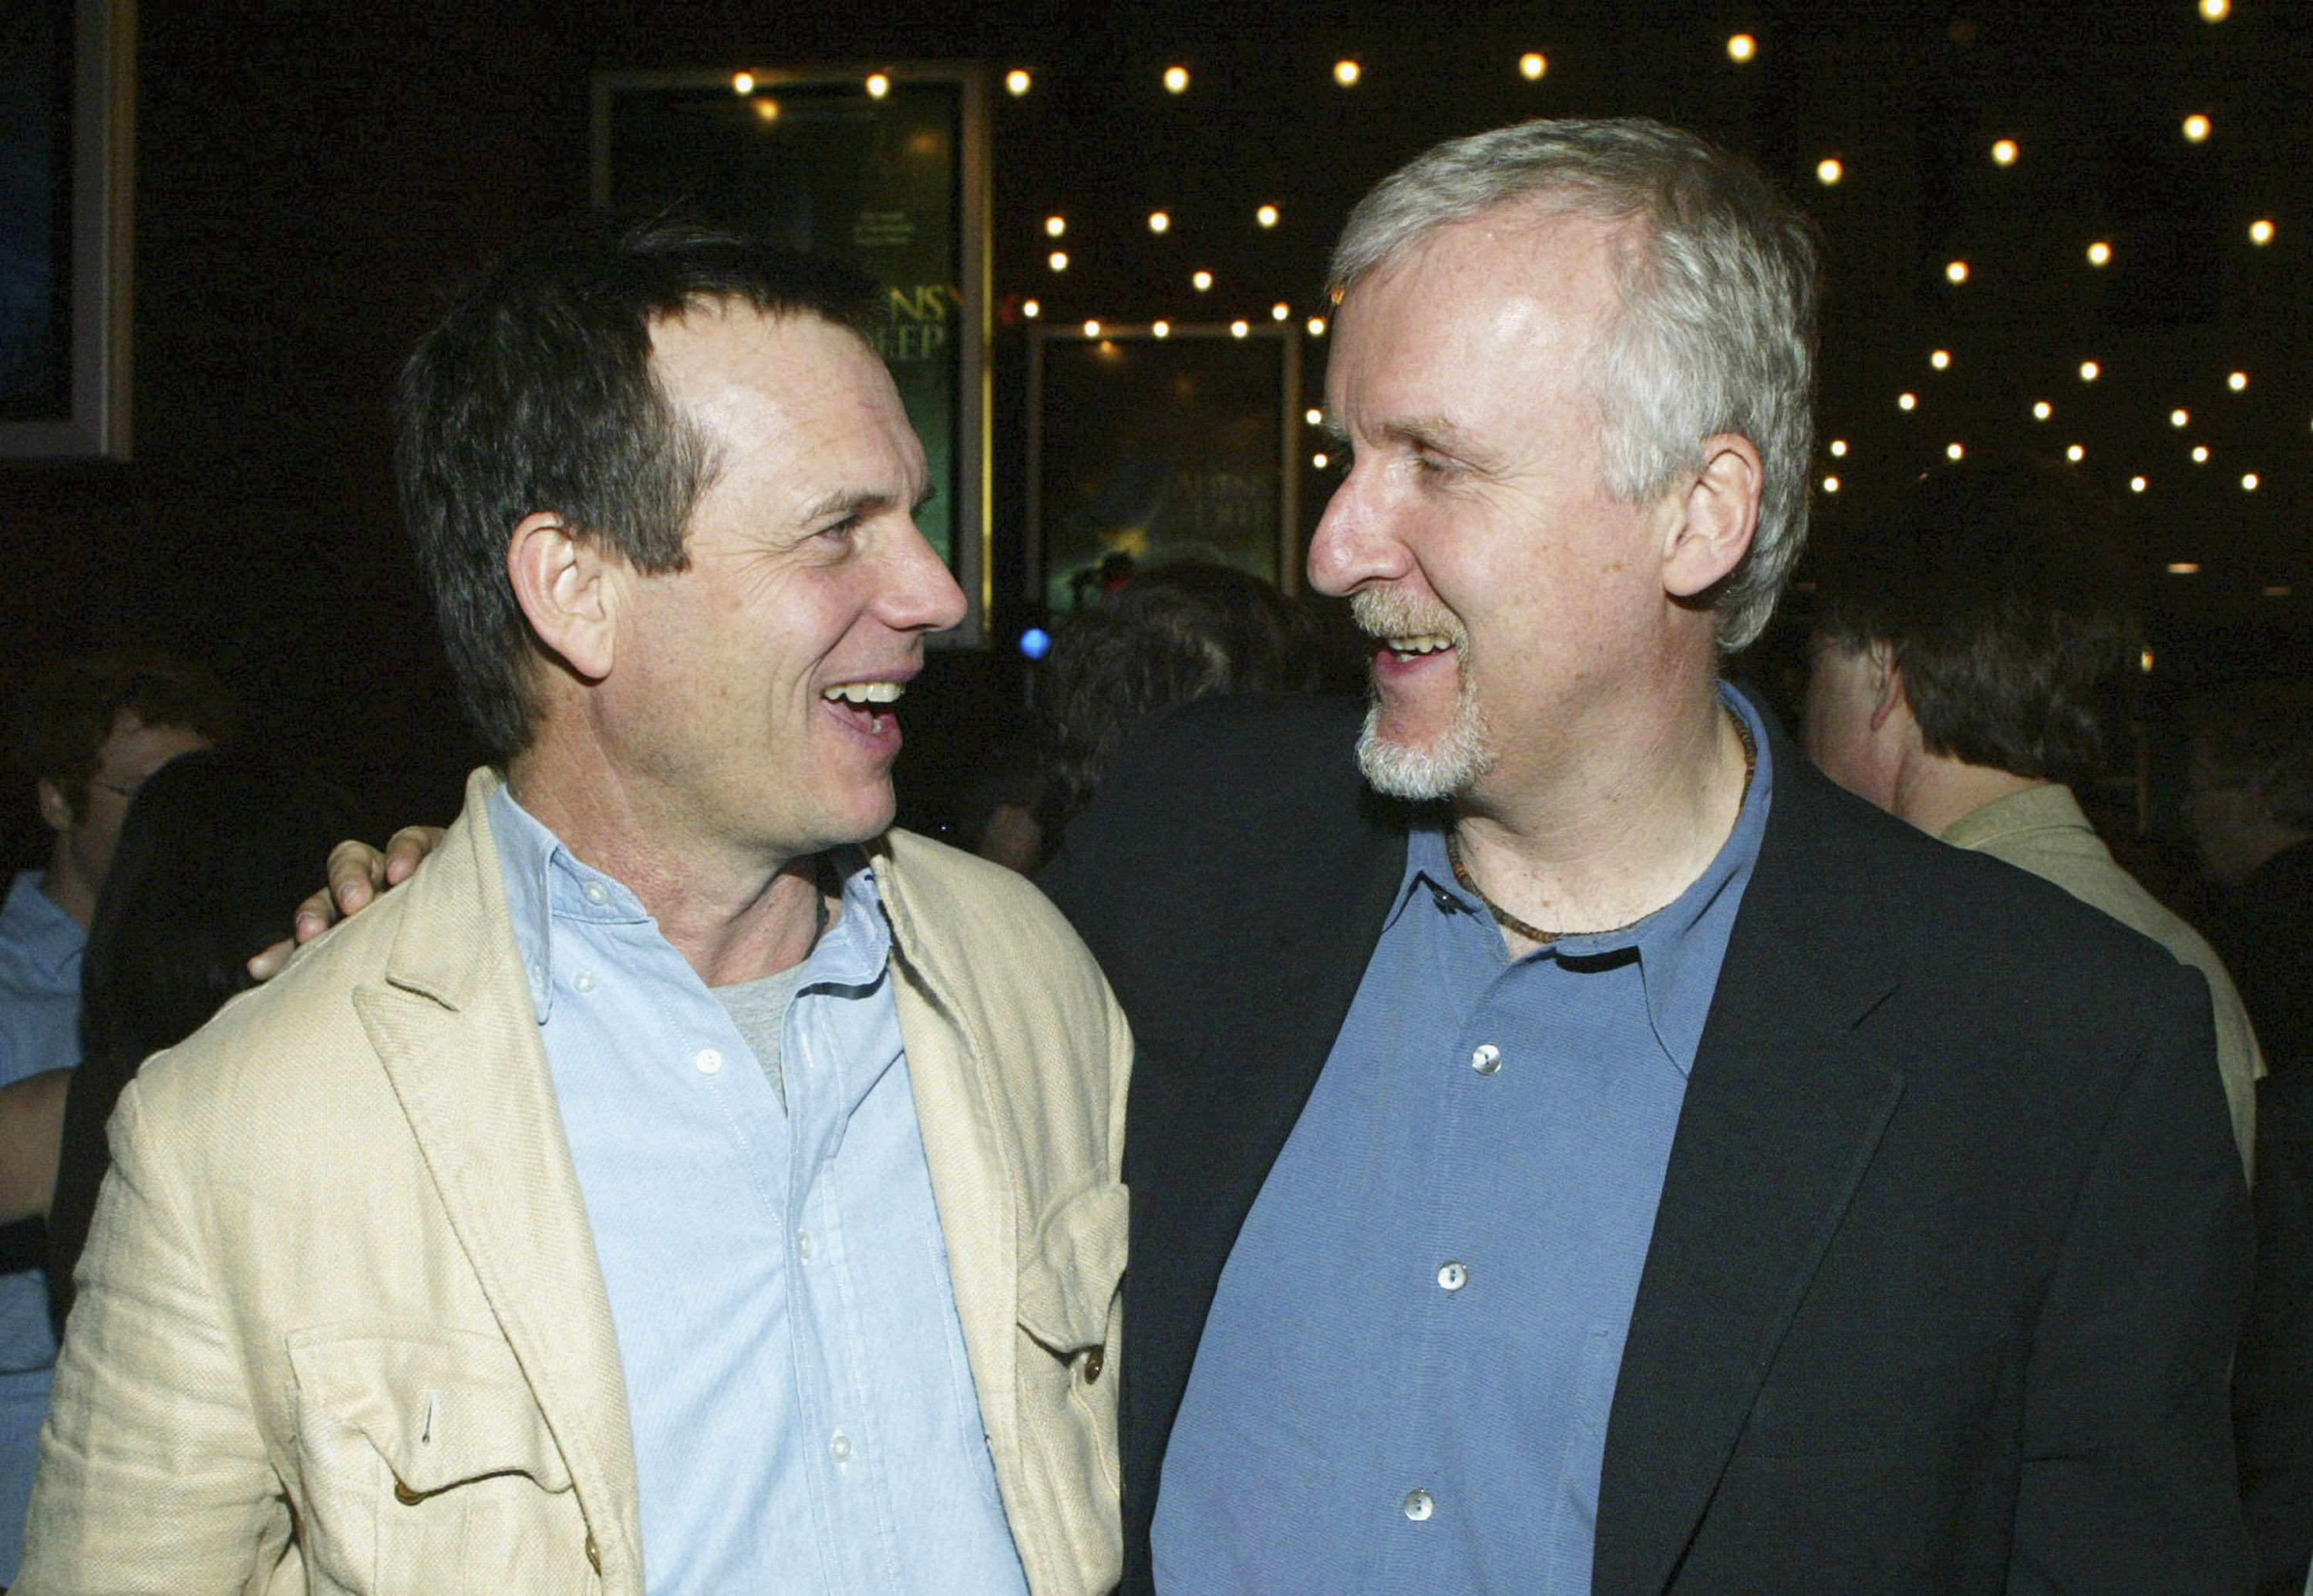 Bill Paxton (left) and James Cameron chat at the after party for the premiere of Aliens Of The Deep at the Universal City Walk IMAX theatre on January 20, 2004, in Universal City, California.